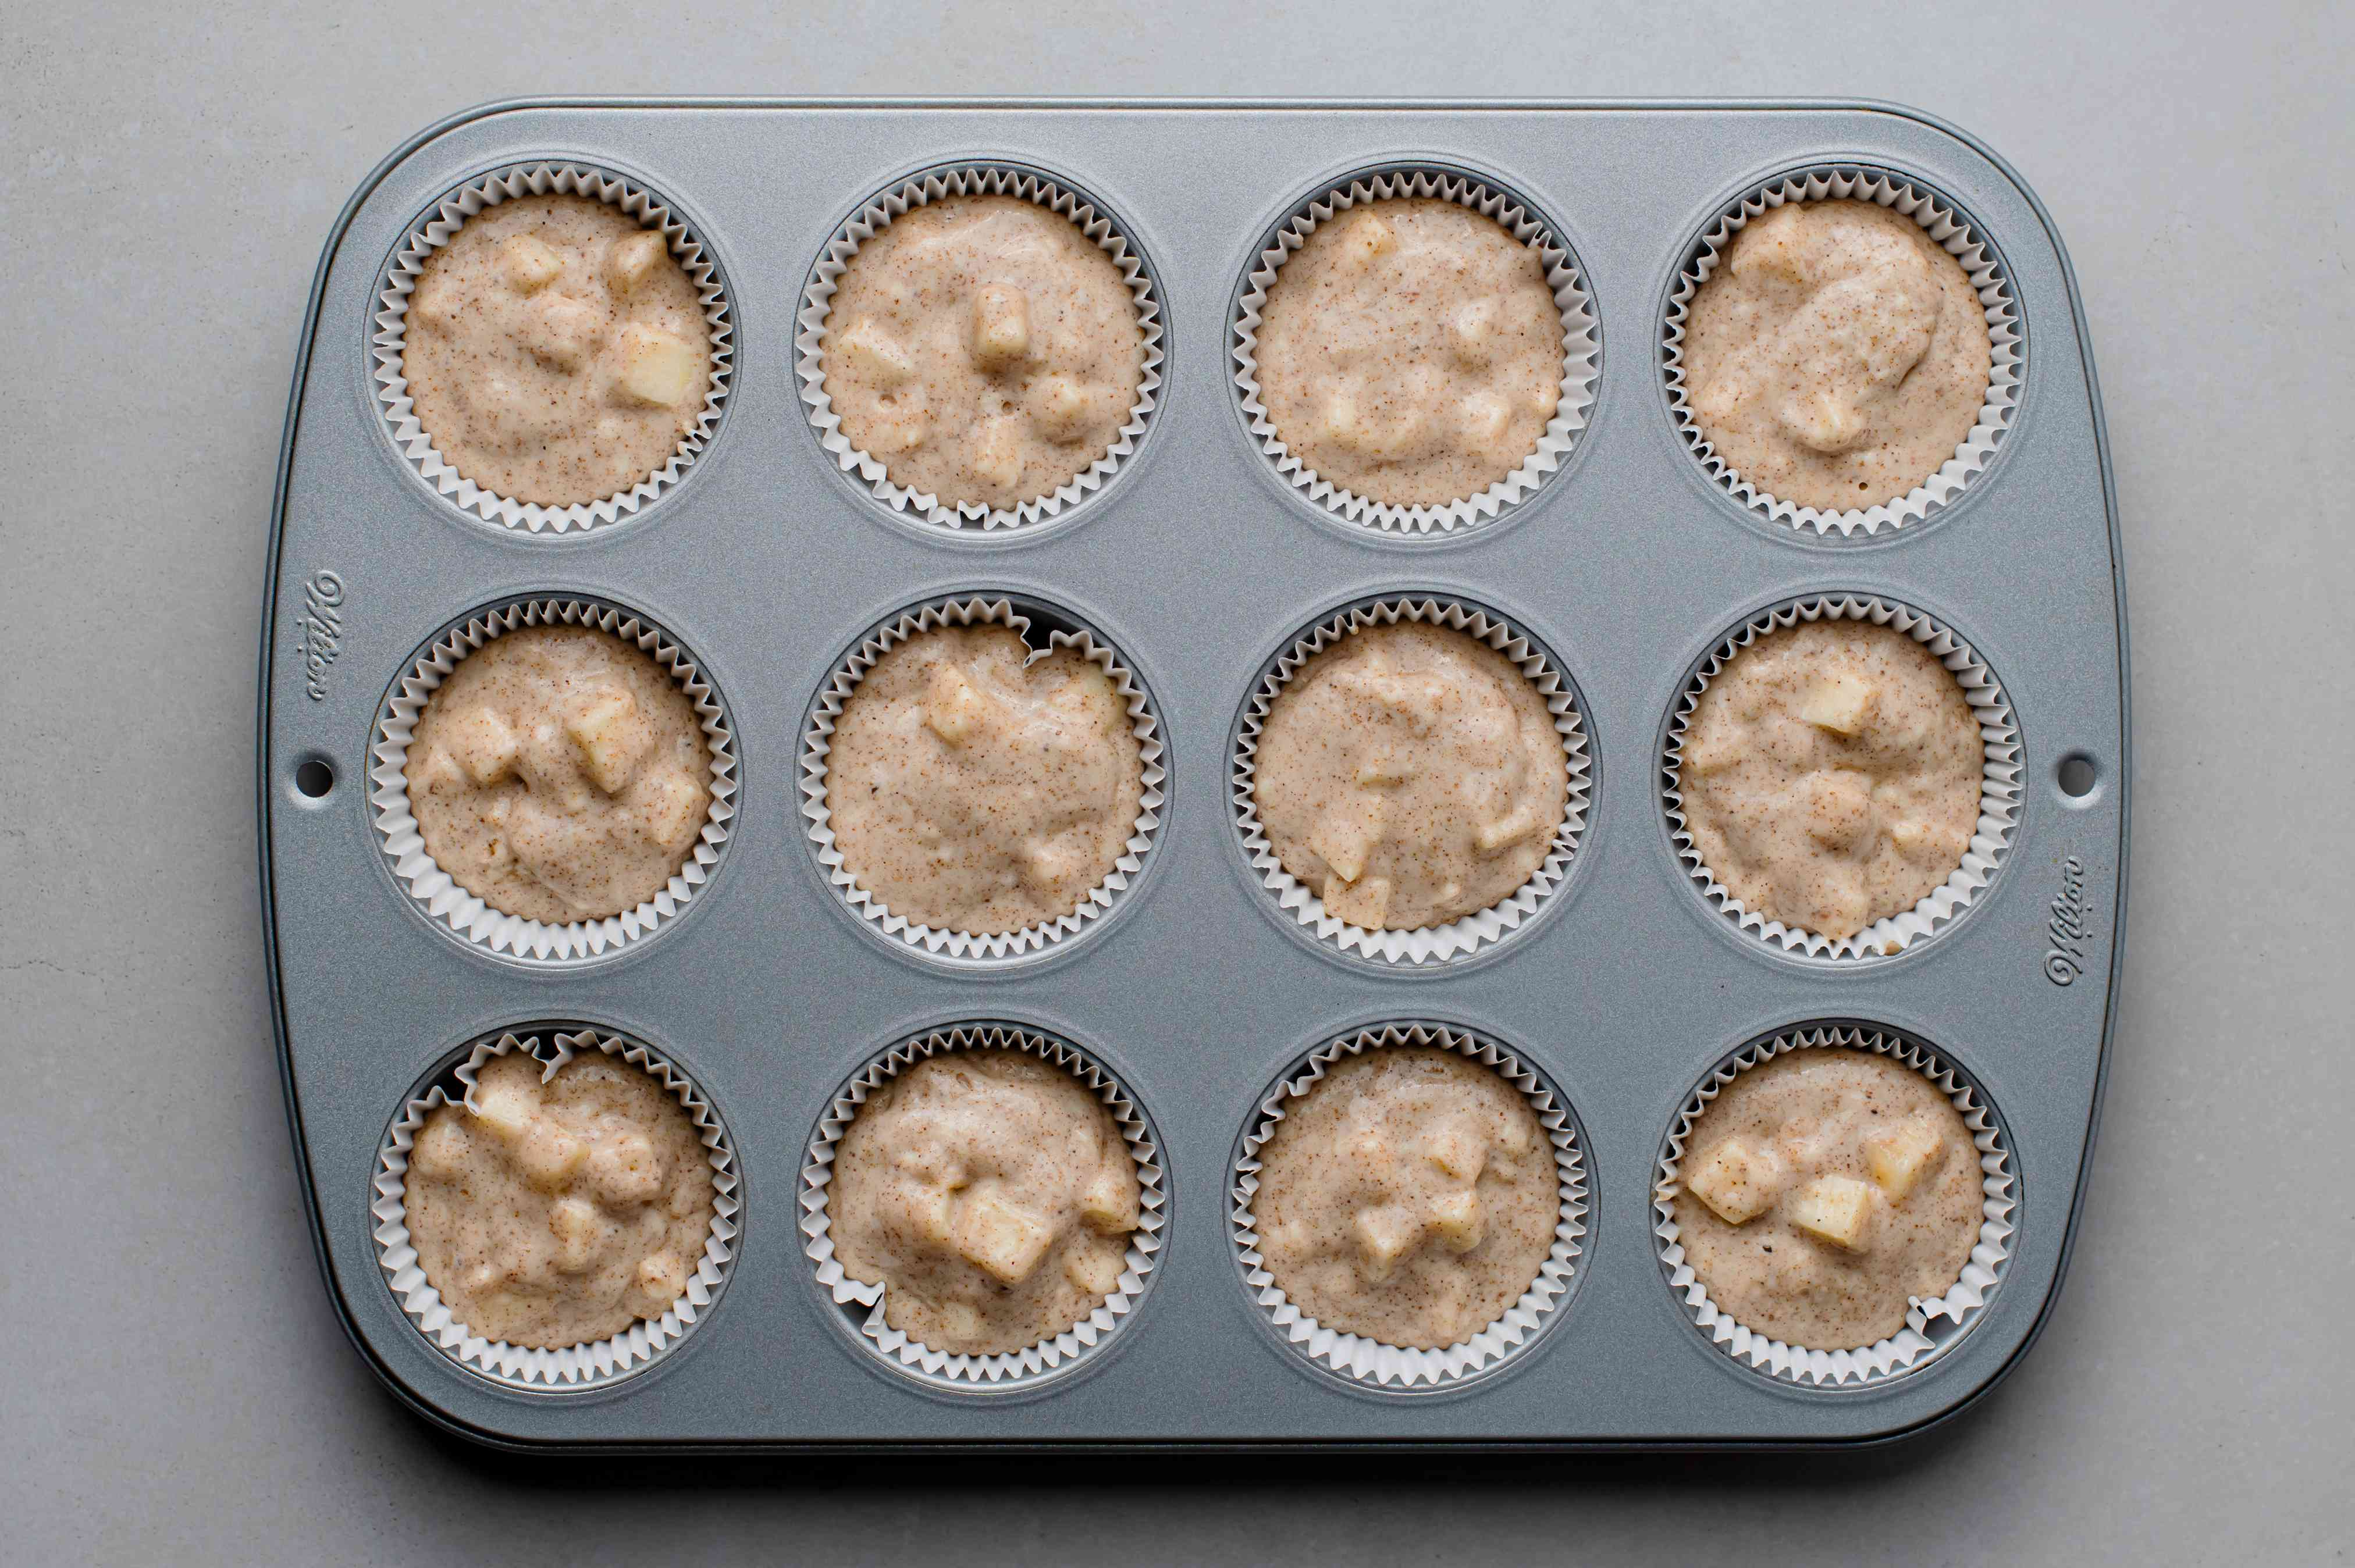 apple cinnamon muffin batter in paper-lined muffin tins